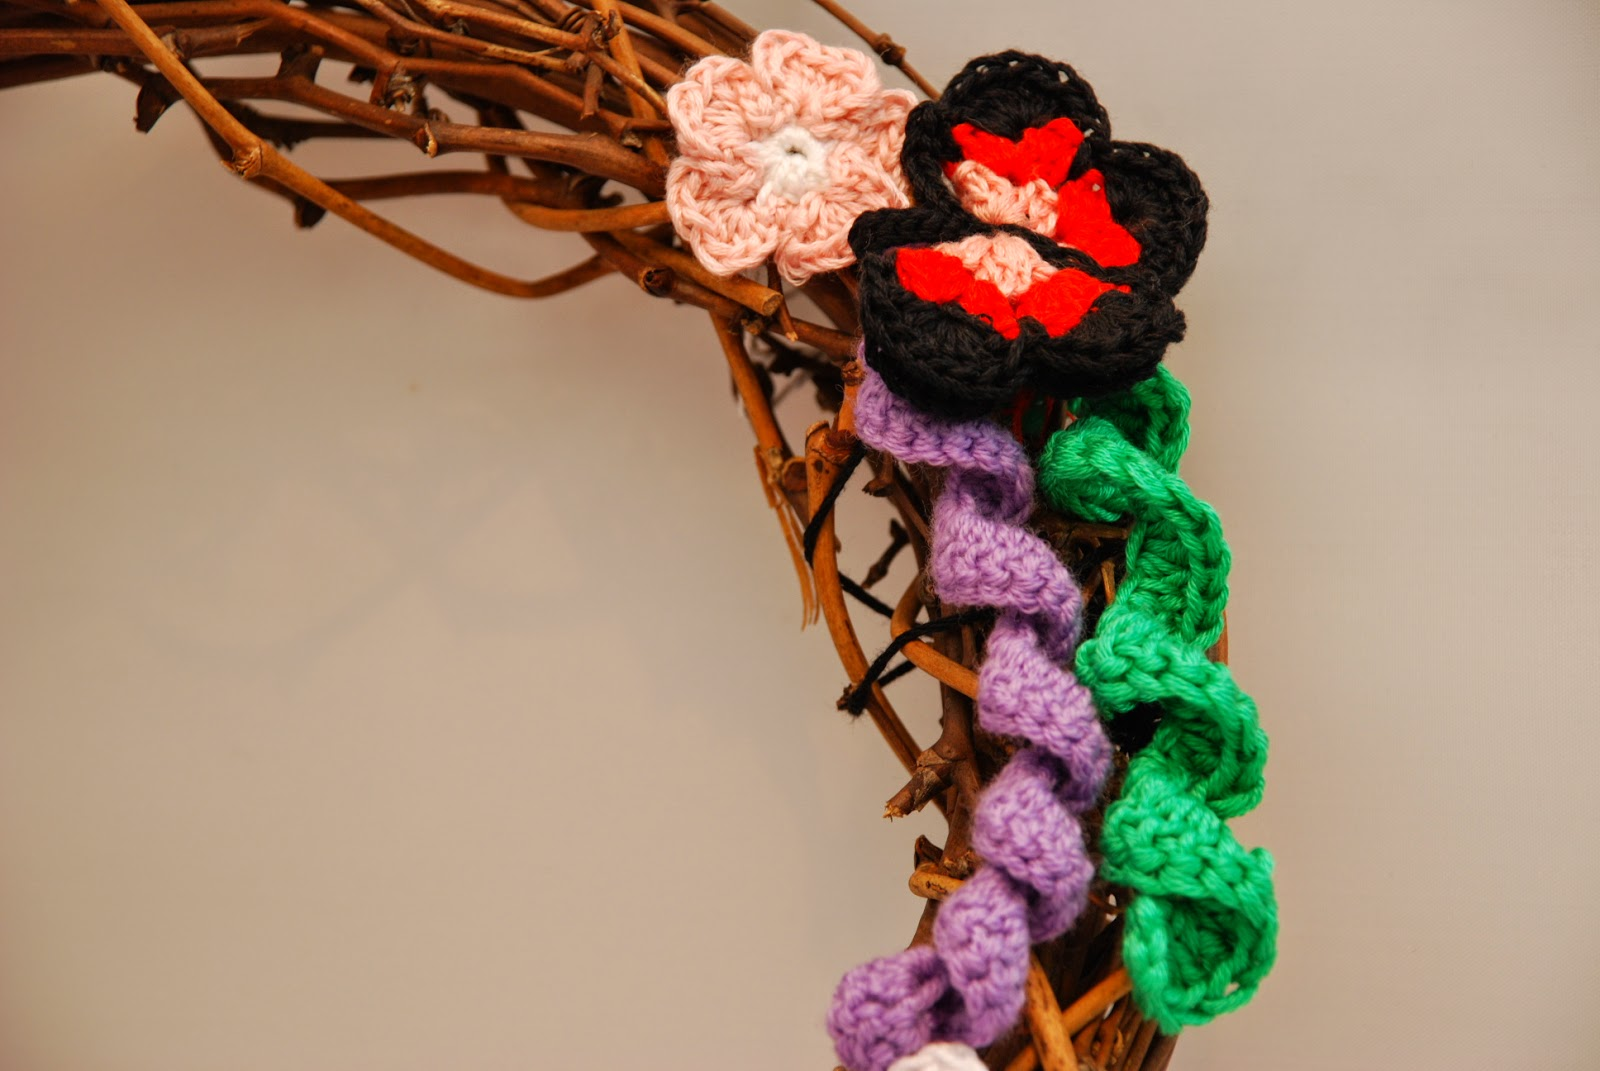 image of crochet butterfly on crochet Spring wreath